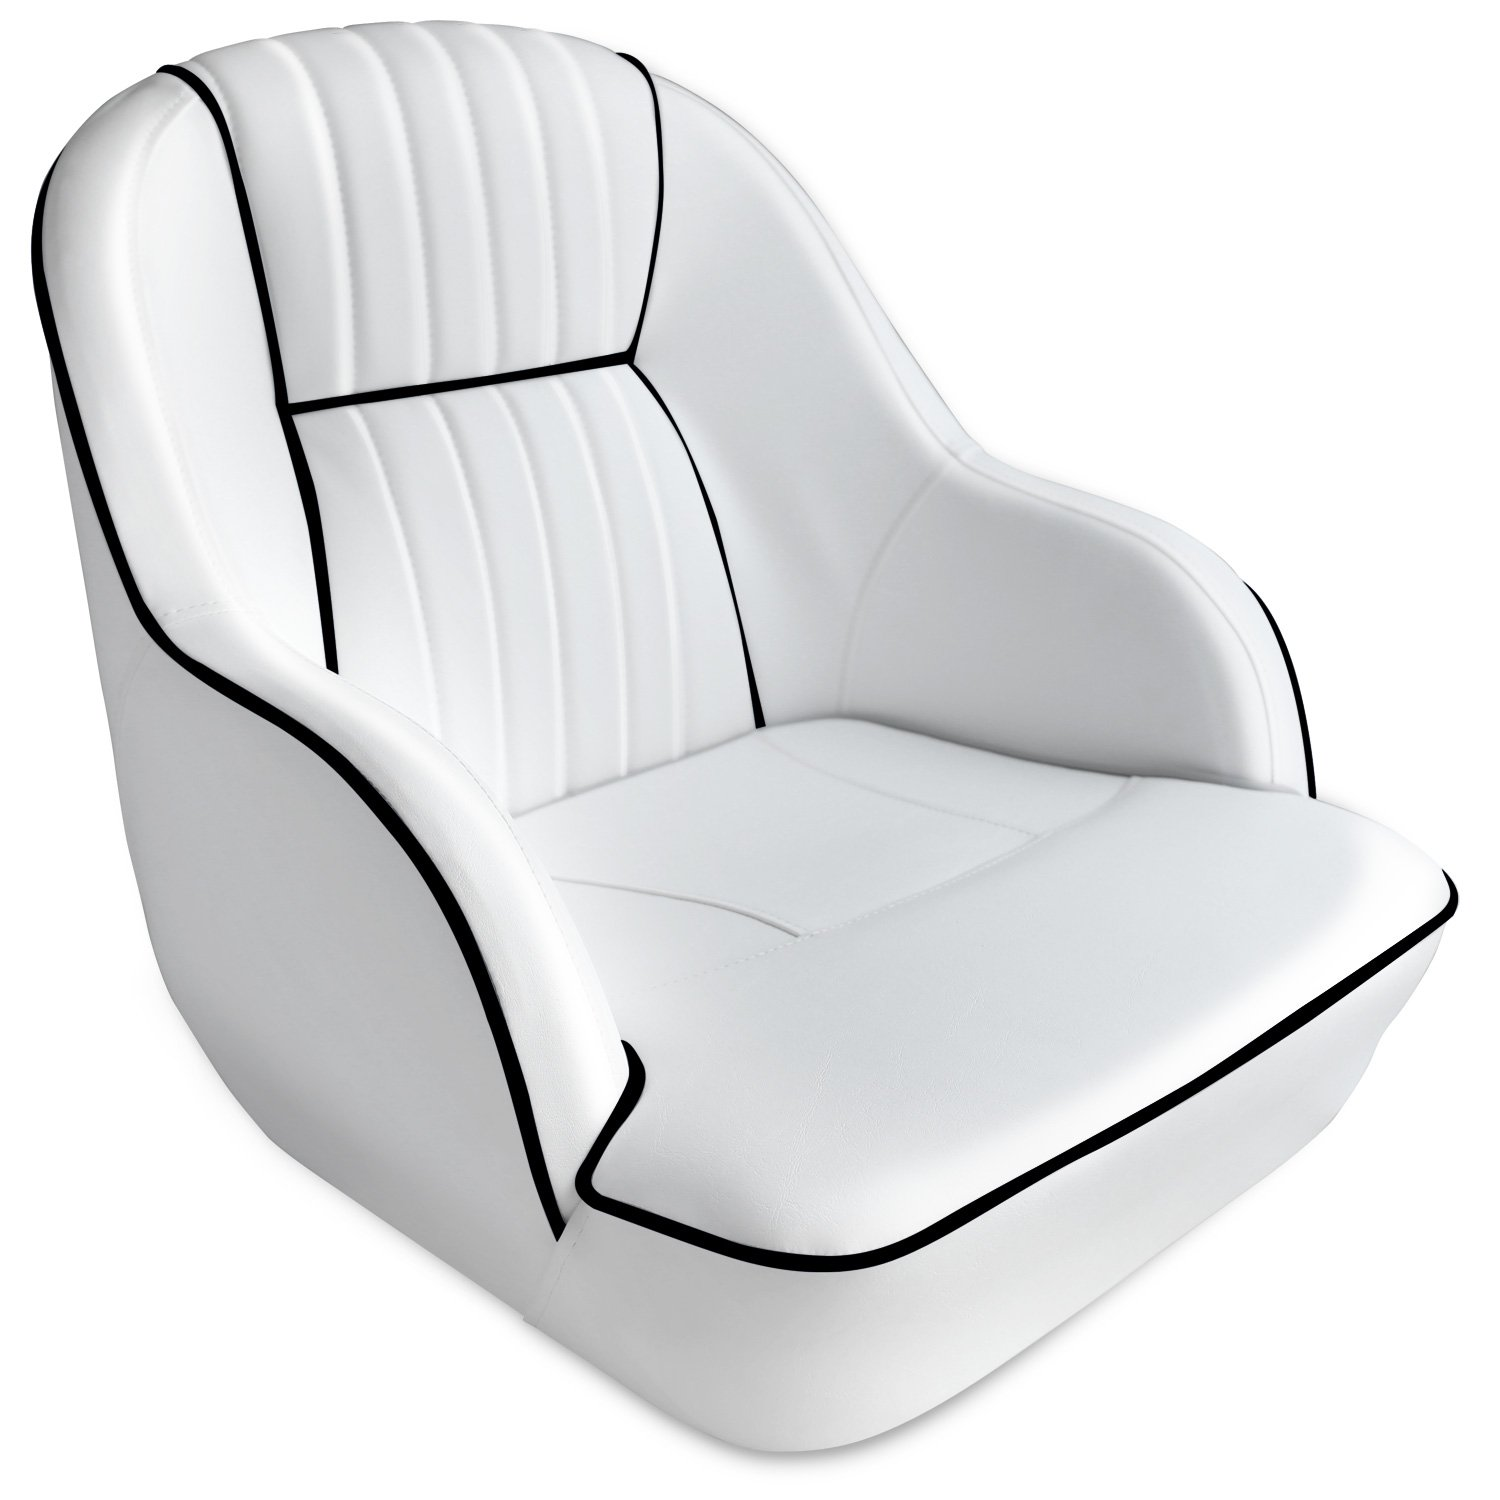 Leader Accessories Pontoon Captains Bucket Seat Boat Seat (White/Black Piping)